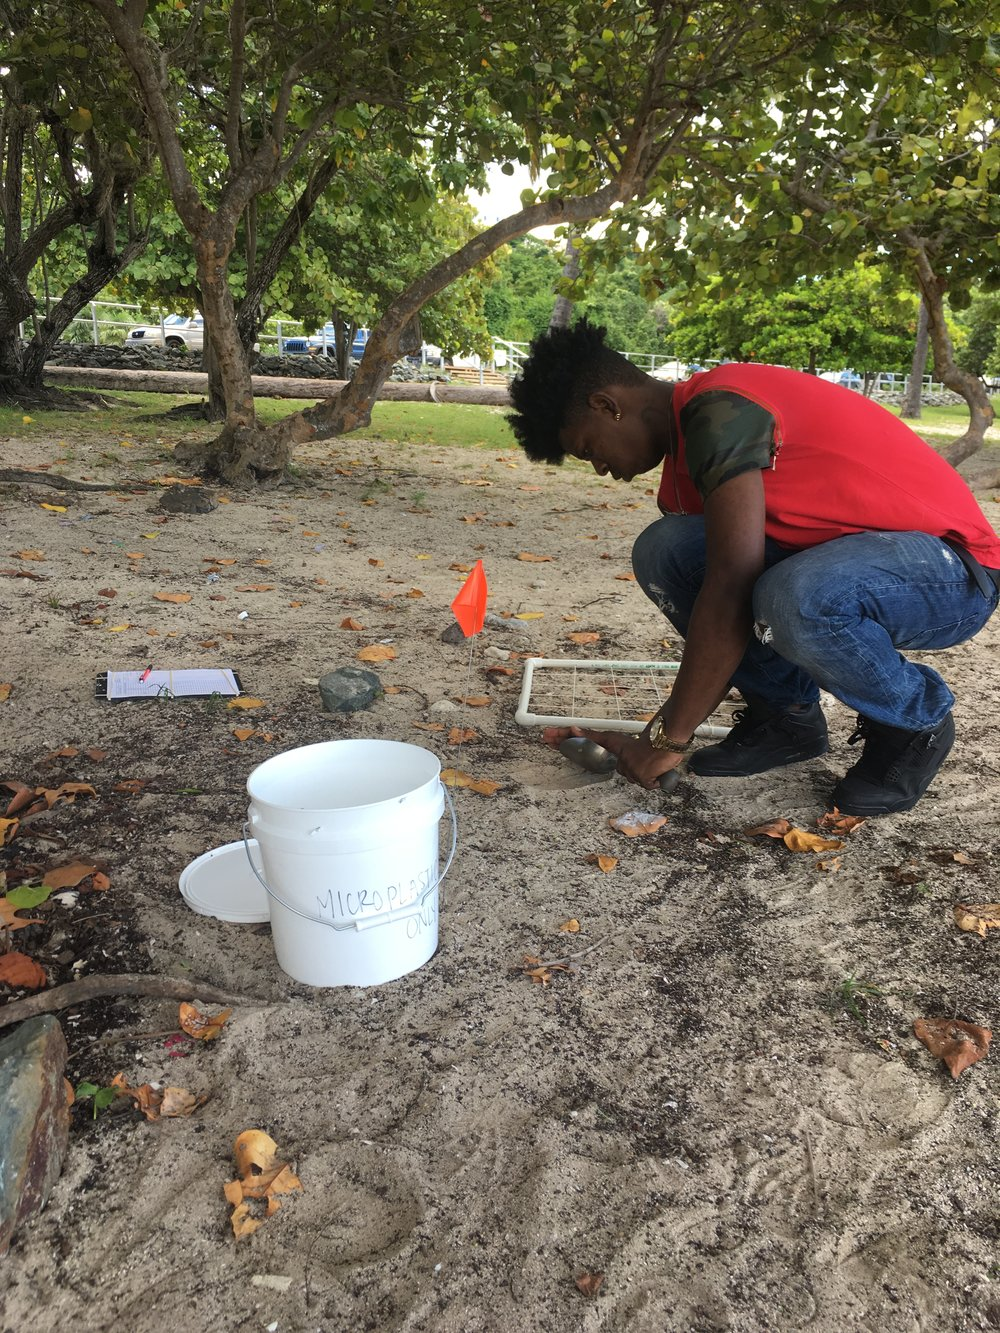 D'Kai Joseph, UVI undergraduate volunteer, collects the top layer of sand 1 cm deep. The white quadrant frame seen here provides a guide to the sample area. The sand is collected into the labeled bucket and taken to the lab for processing. It will undergo a series of density separation processes to separate plastic from natural materials.